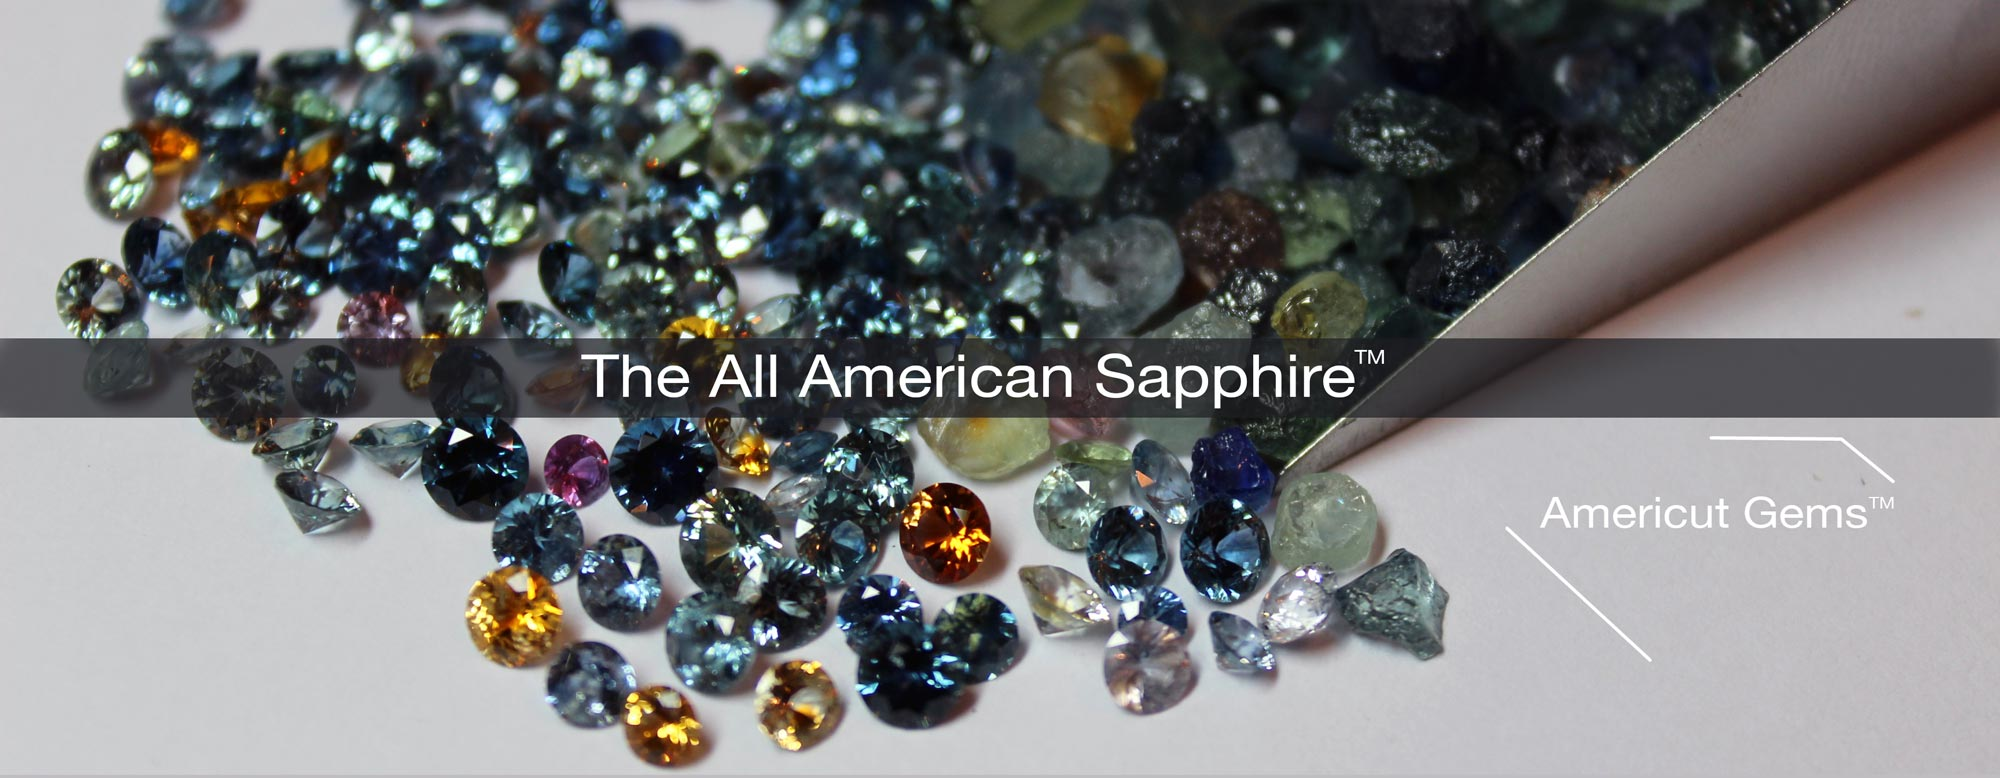 The All American Sapphire from Americut Gems is the only sapphire that is mined, cut and polished in the US in all sizes